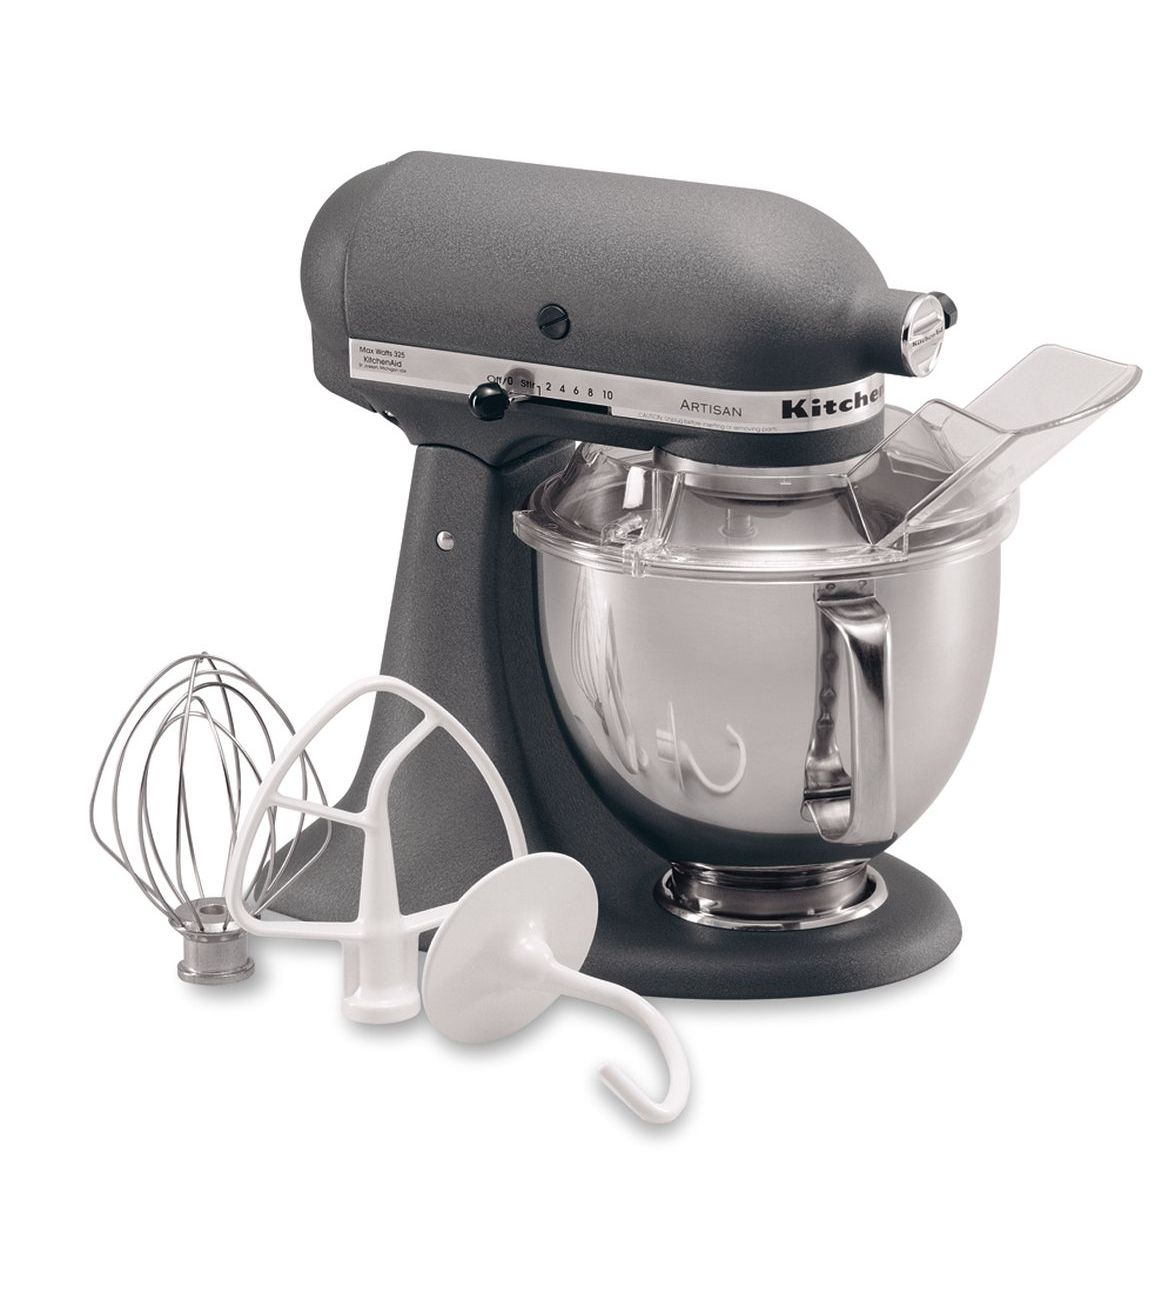 KitchenAid® Refurbished Artisan® Series 5 Quart Tilt-Head Stand Mixer, RRK150 Grey